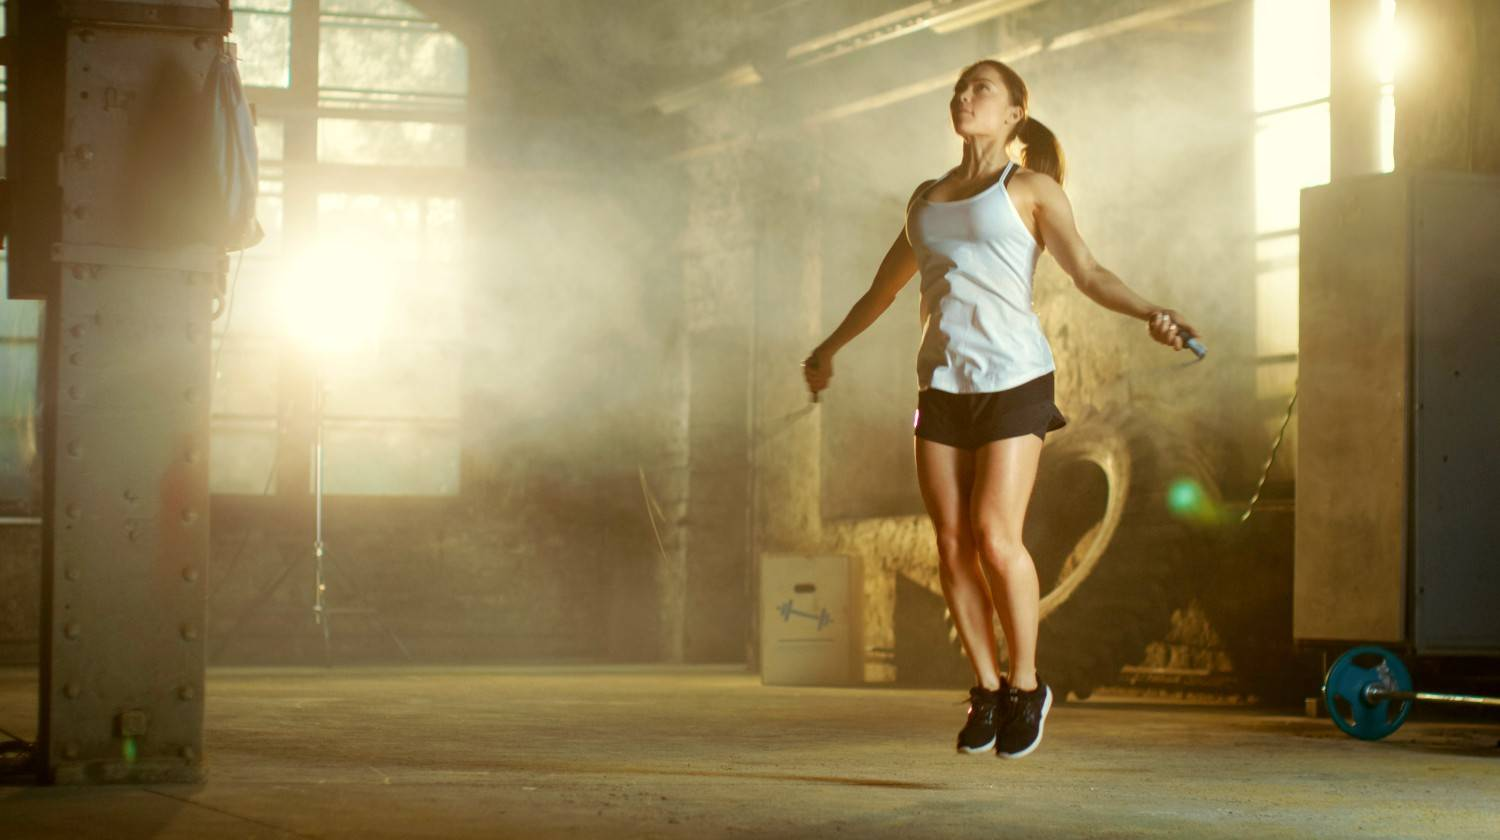 Athletic Beautiful Woman Exercises with Jump Rope in a Gym | Best Jump Rope Workout Routines To Burn Stubborn Fat | jump rope hiit workout | Featured